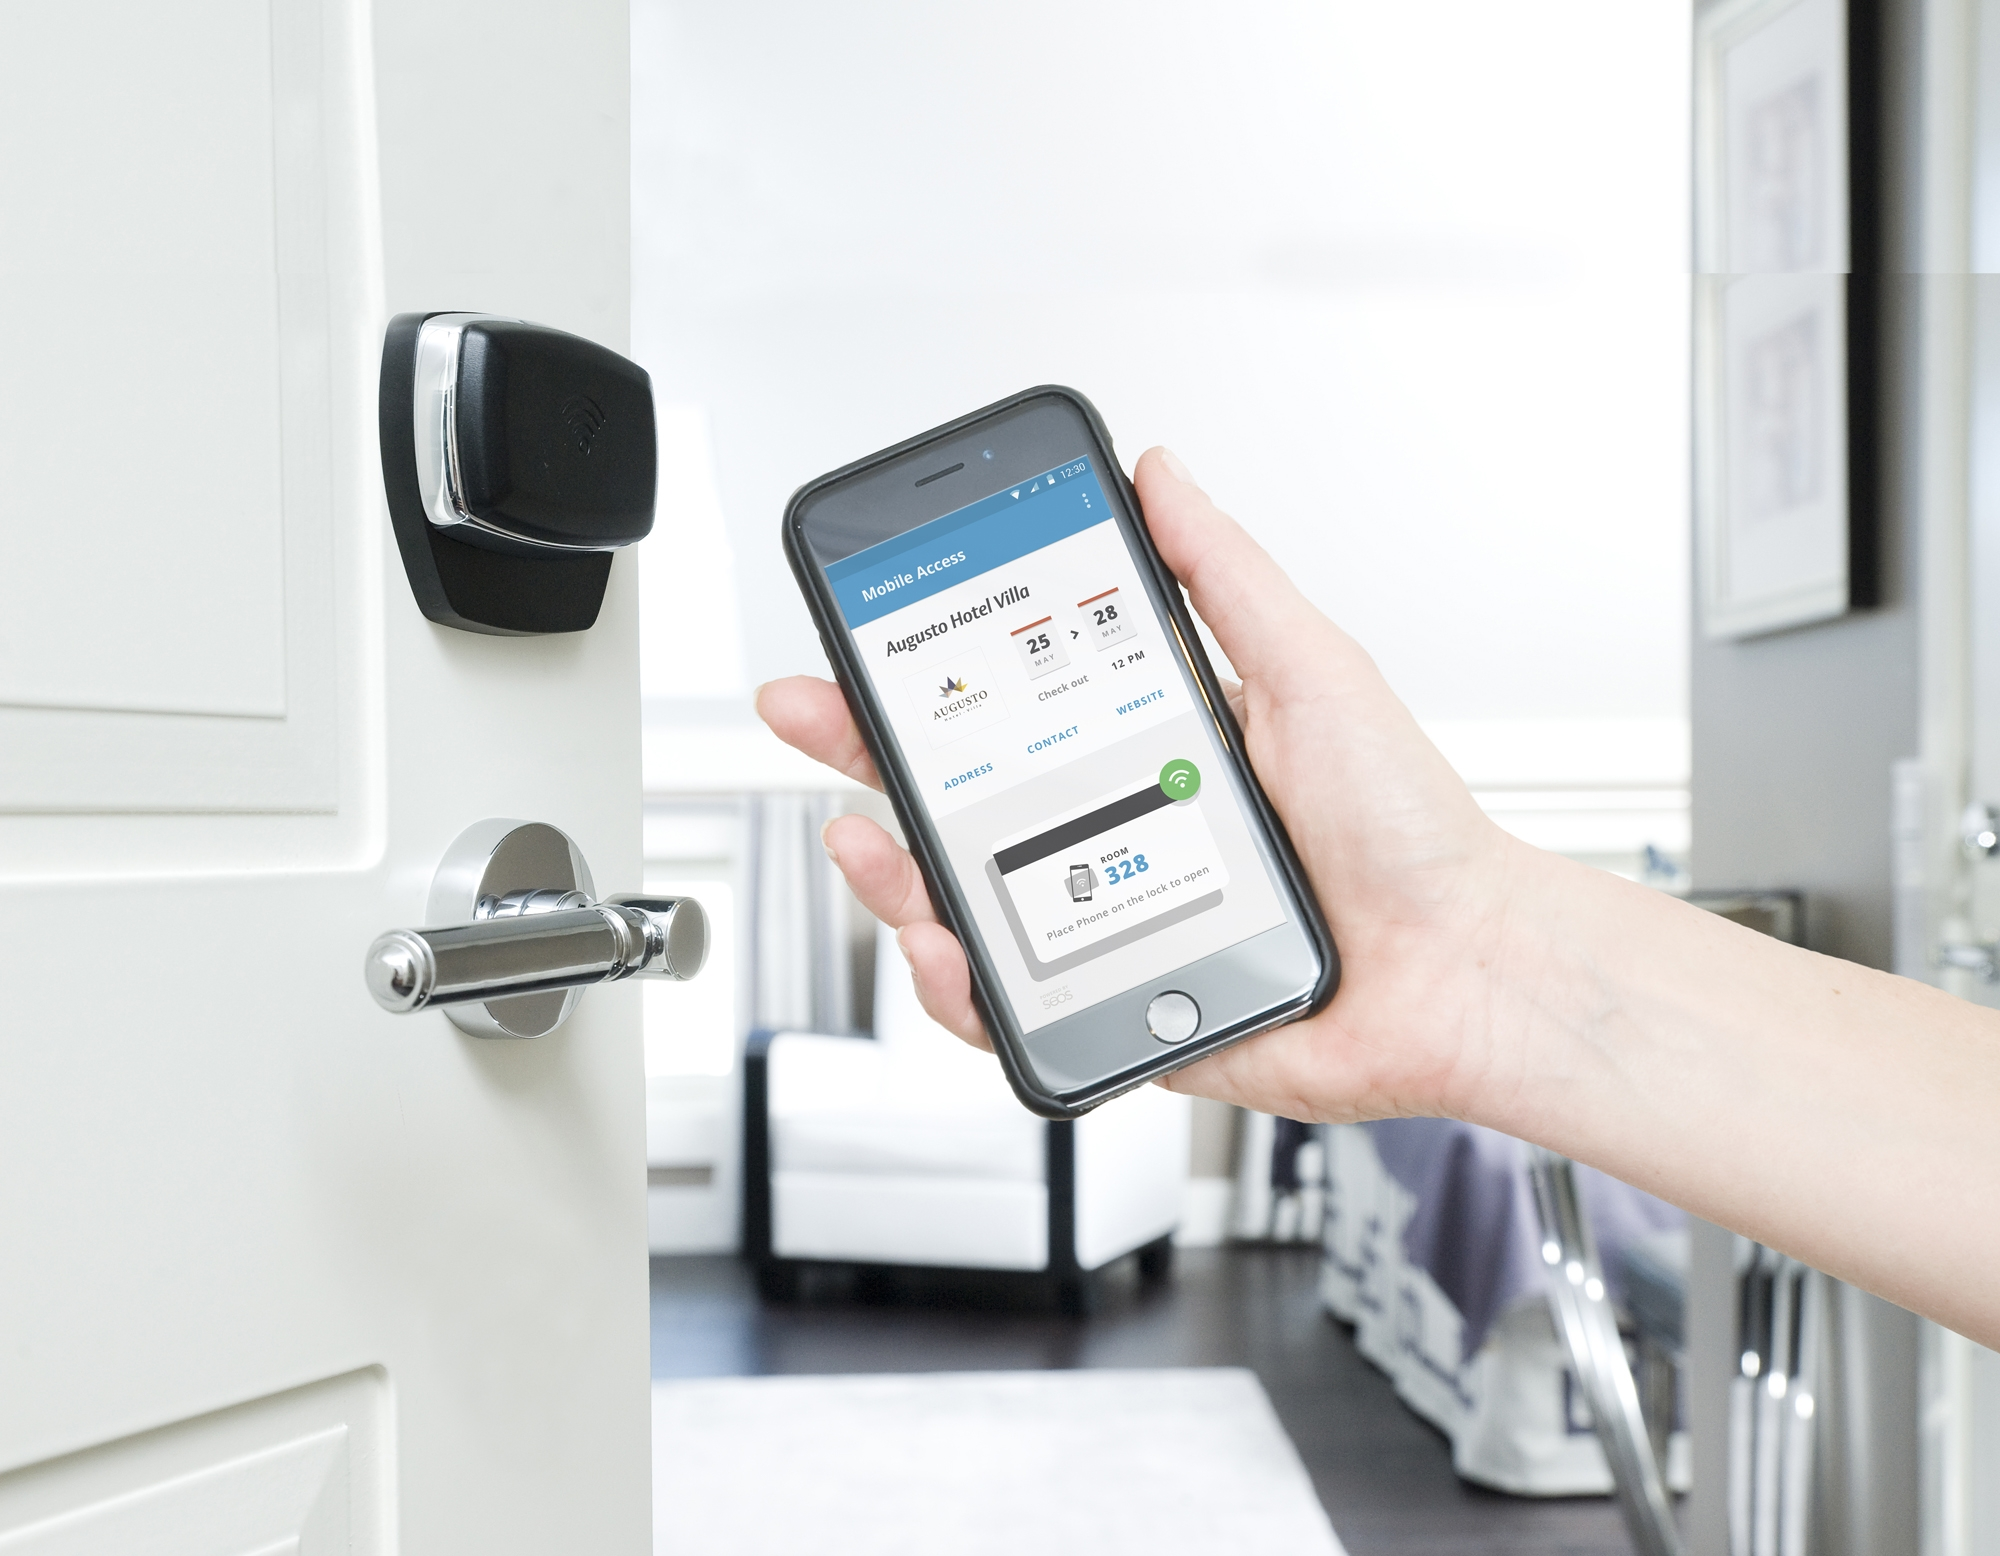 What are the biggest things hoteliers should consider when replacing or upgrading existing door locks? Lock companies narrowed down their top suggestions